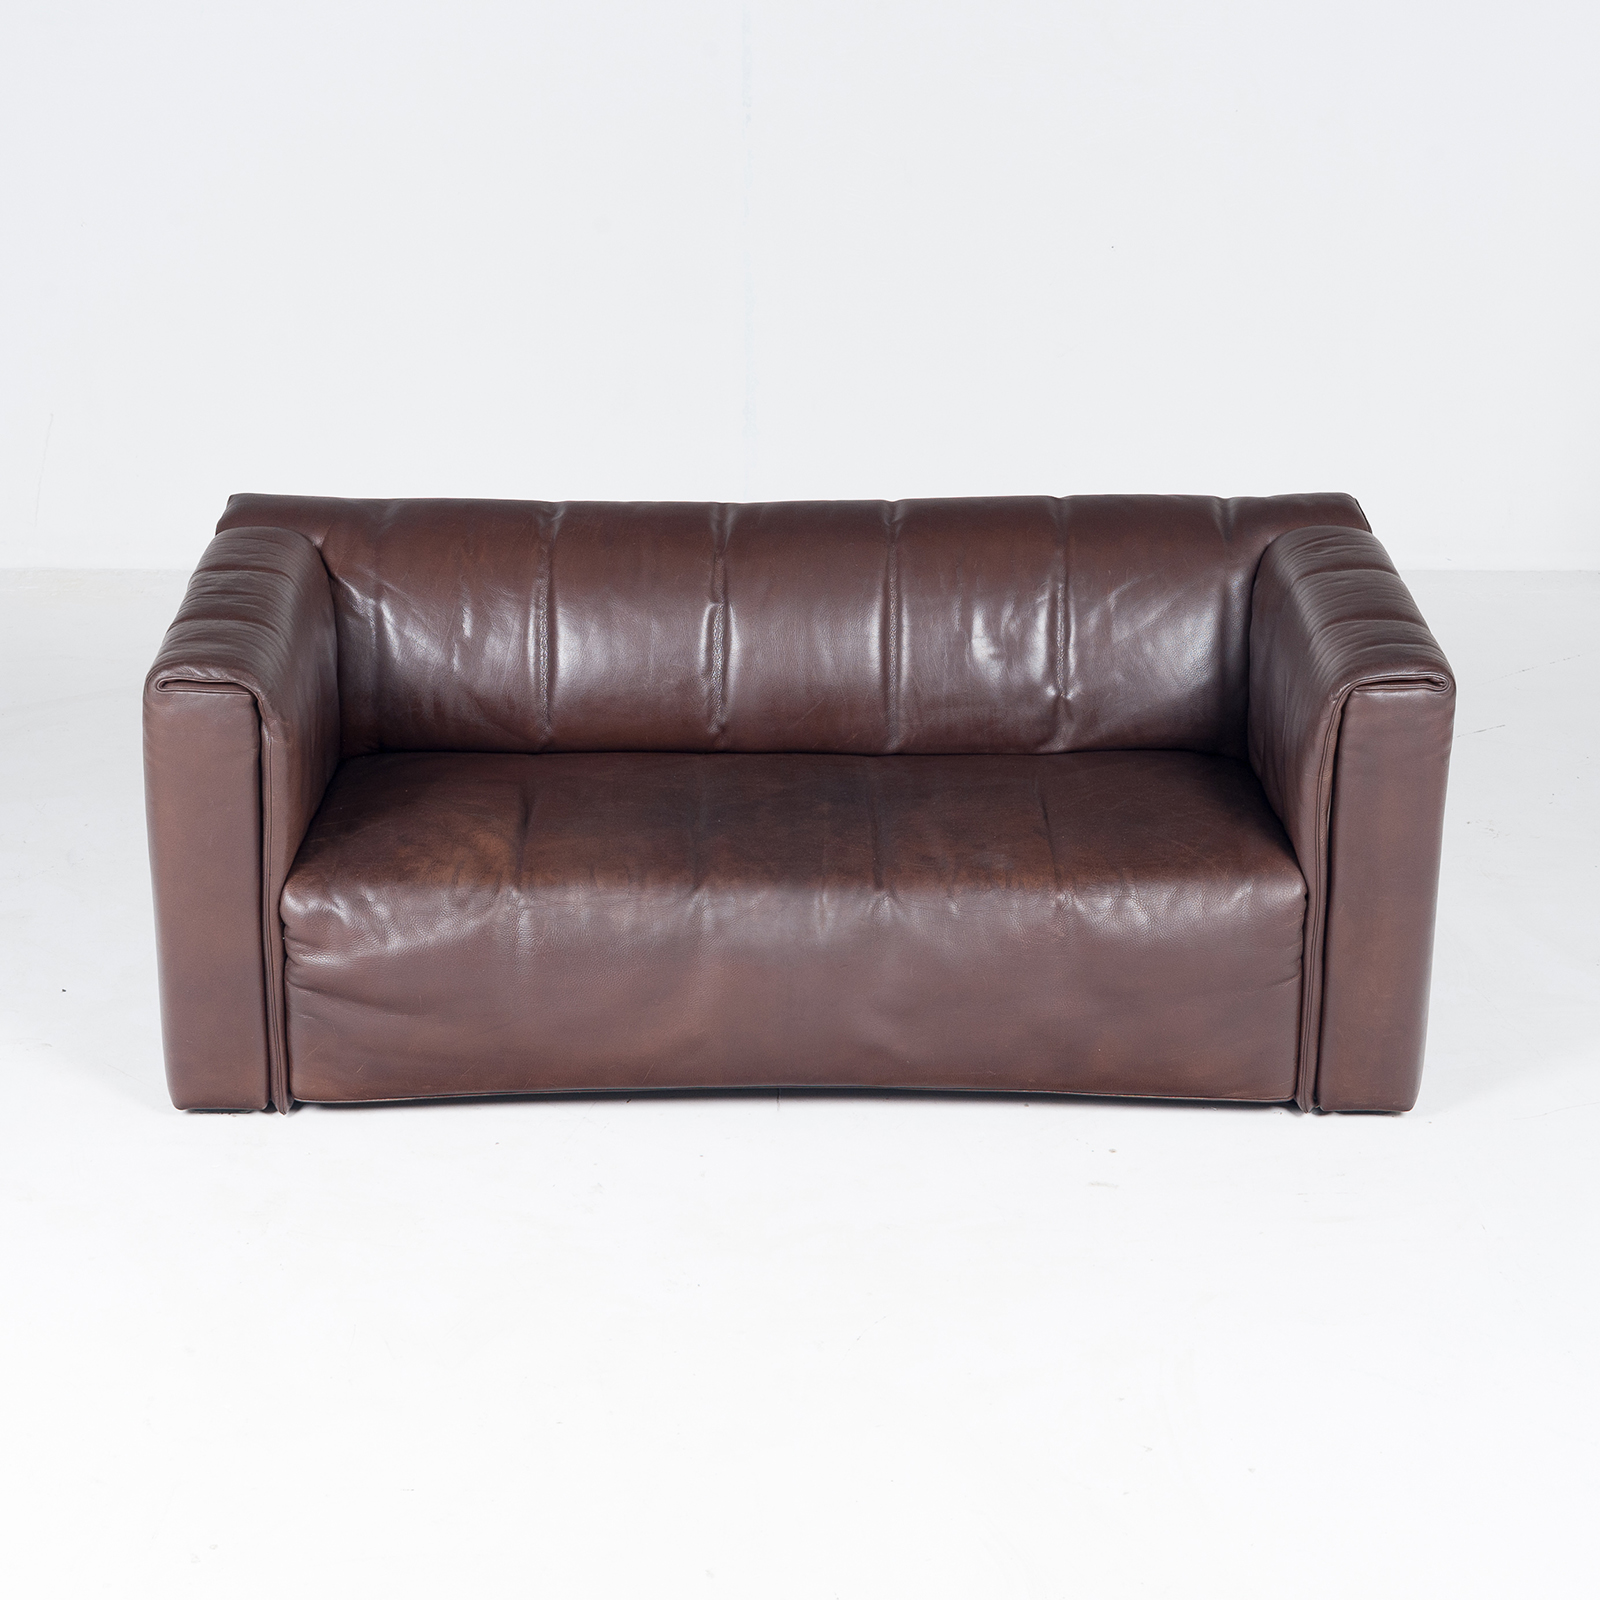 2.5 Seat Leather Sofa By Wittmann, Austria34